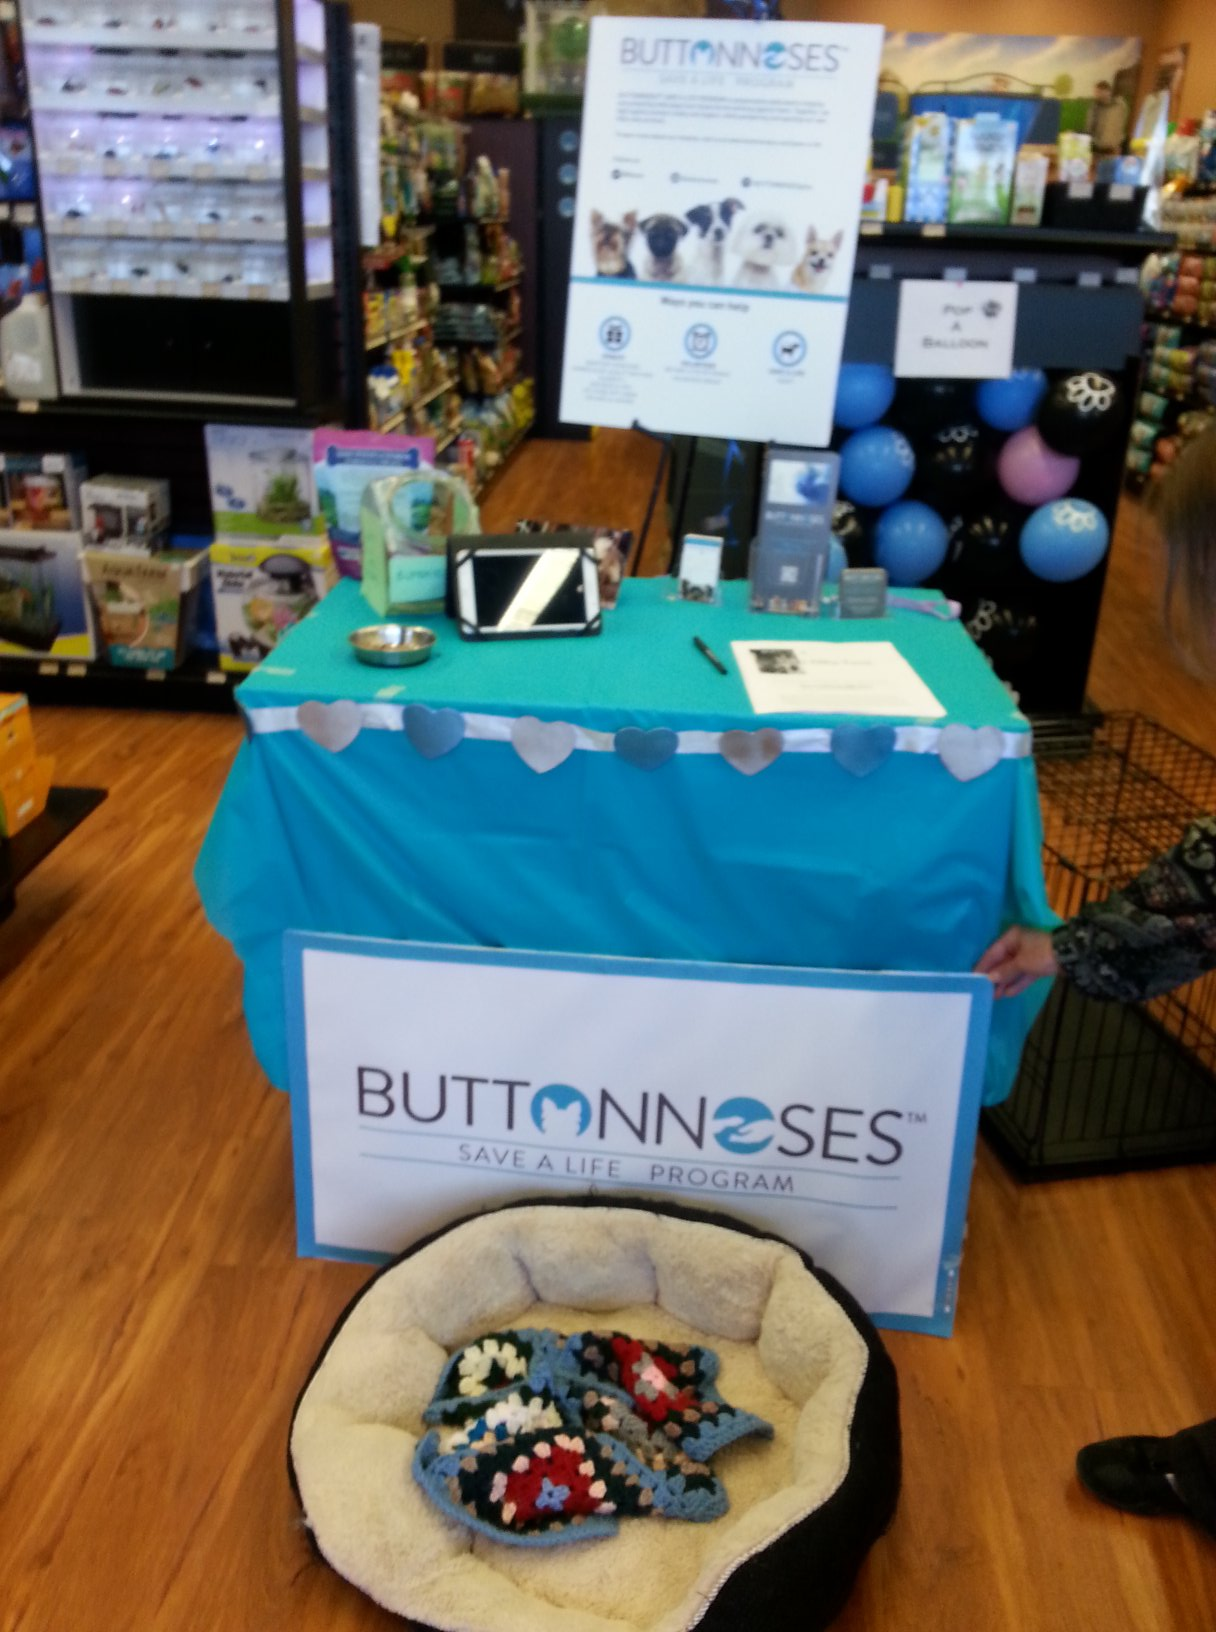 BUTTONNOSES booth at the adoption event